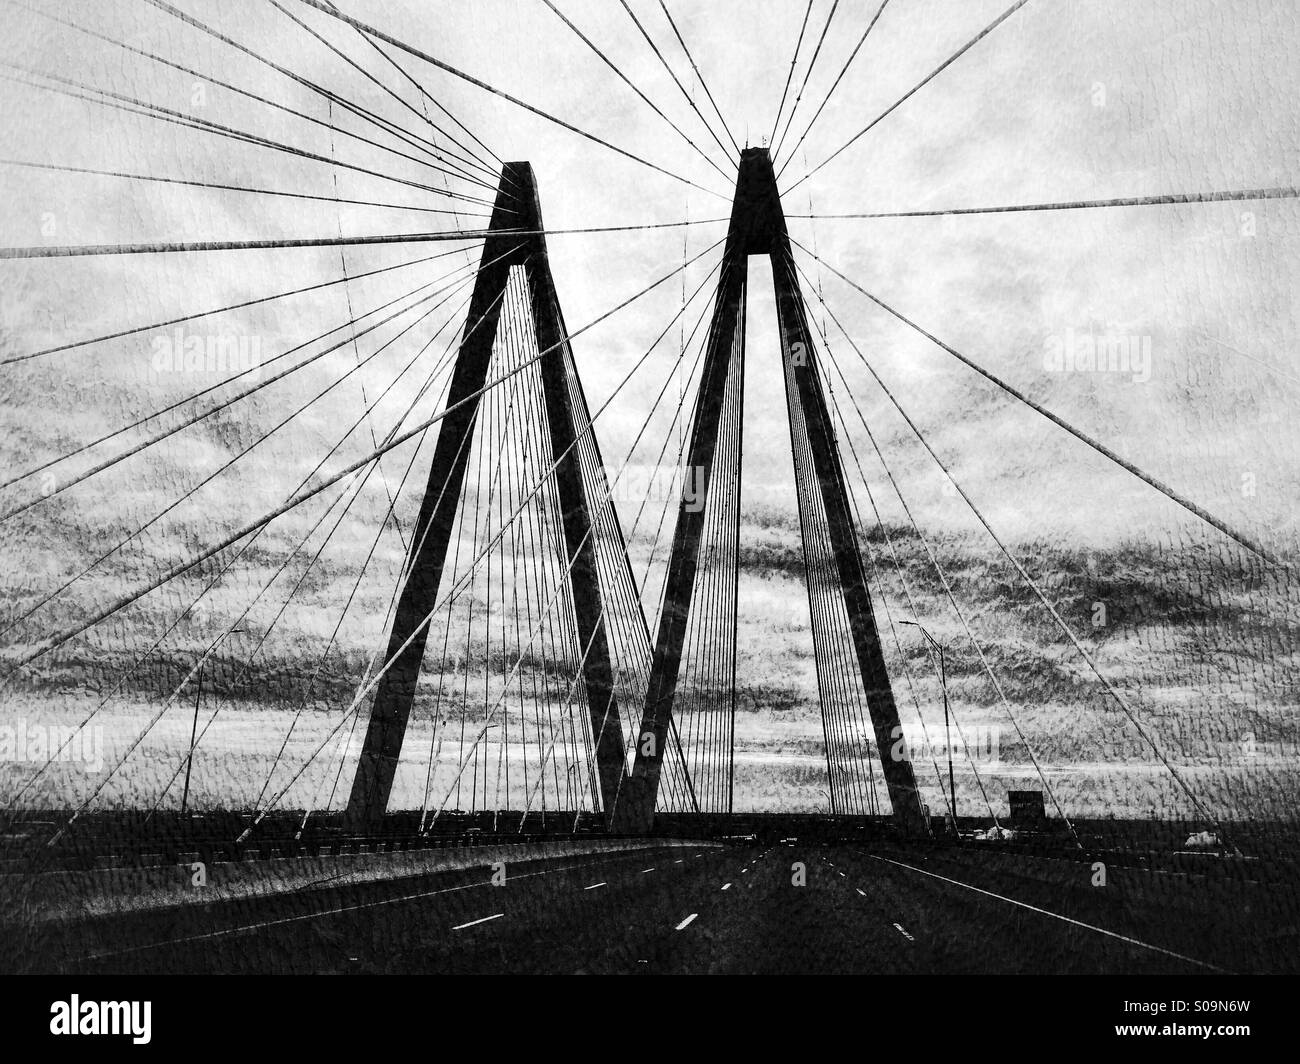 Diagonal lines making patterns and designs at the Hartman Bridge over the Houston Ship Channel, in black and white, - Stock Image